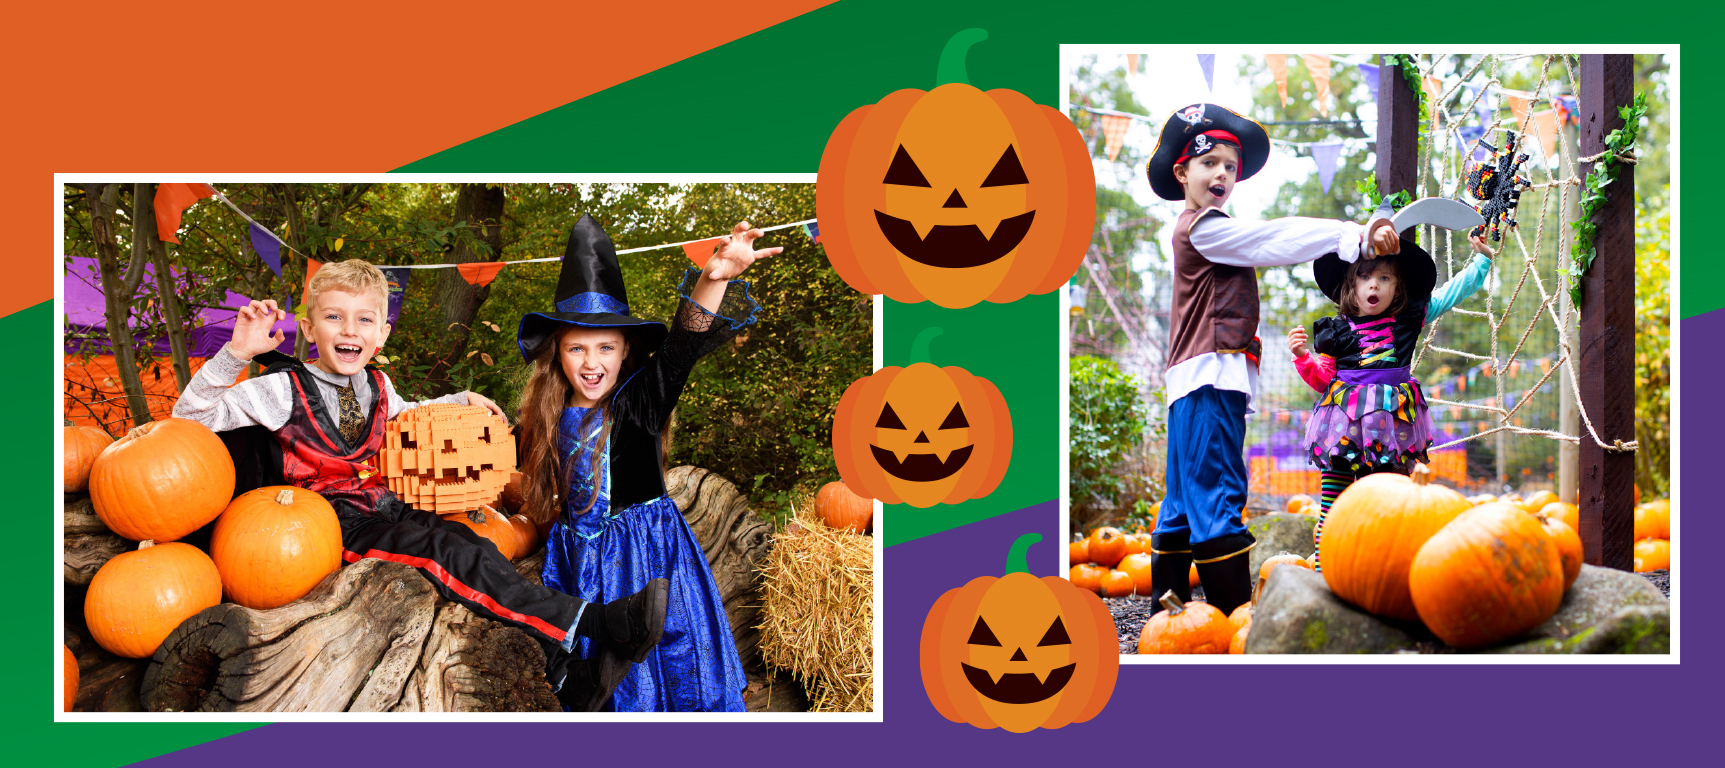 A Spook-Tacular Family Day Out at The LEGOLAND® Windsor Resort